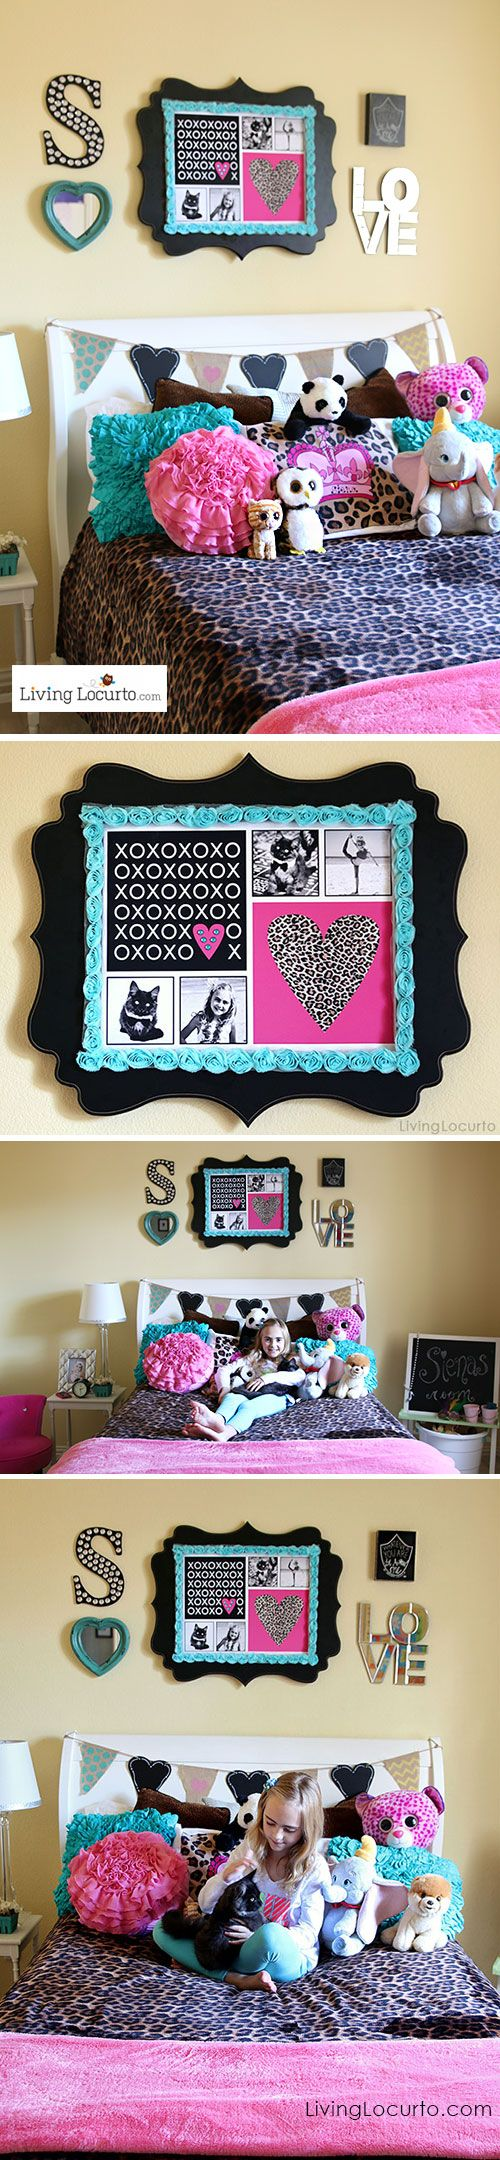 Girls bedroom wall art ideas decorating ideas and cute diy